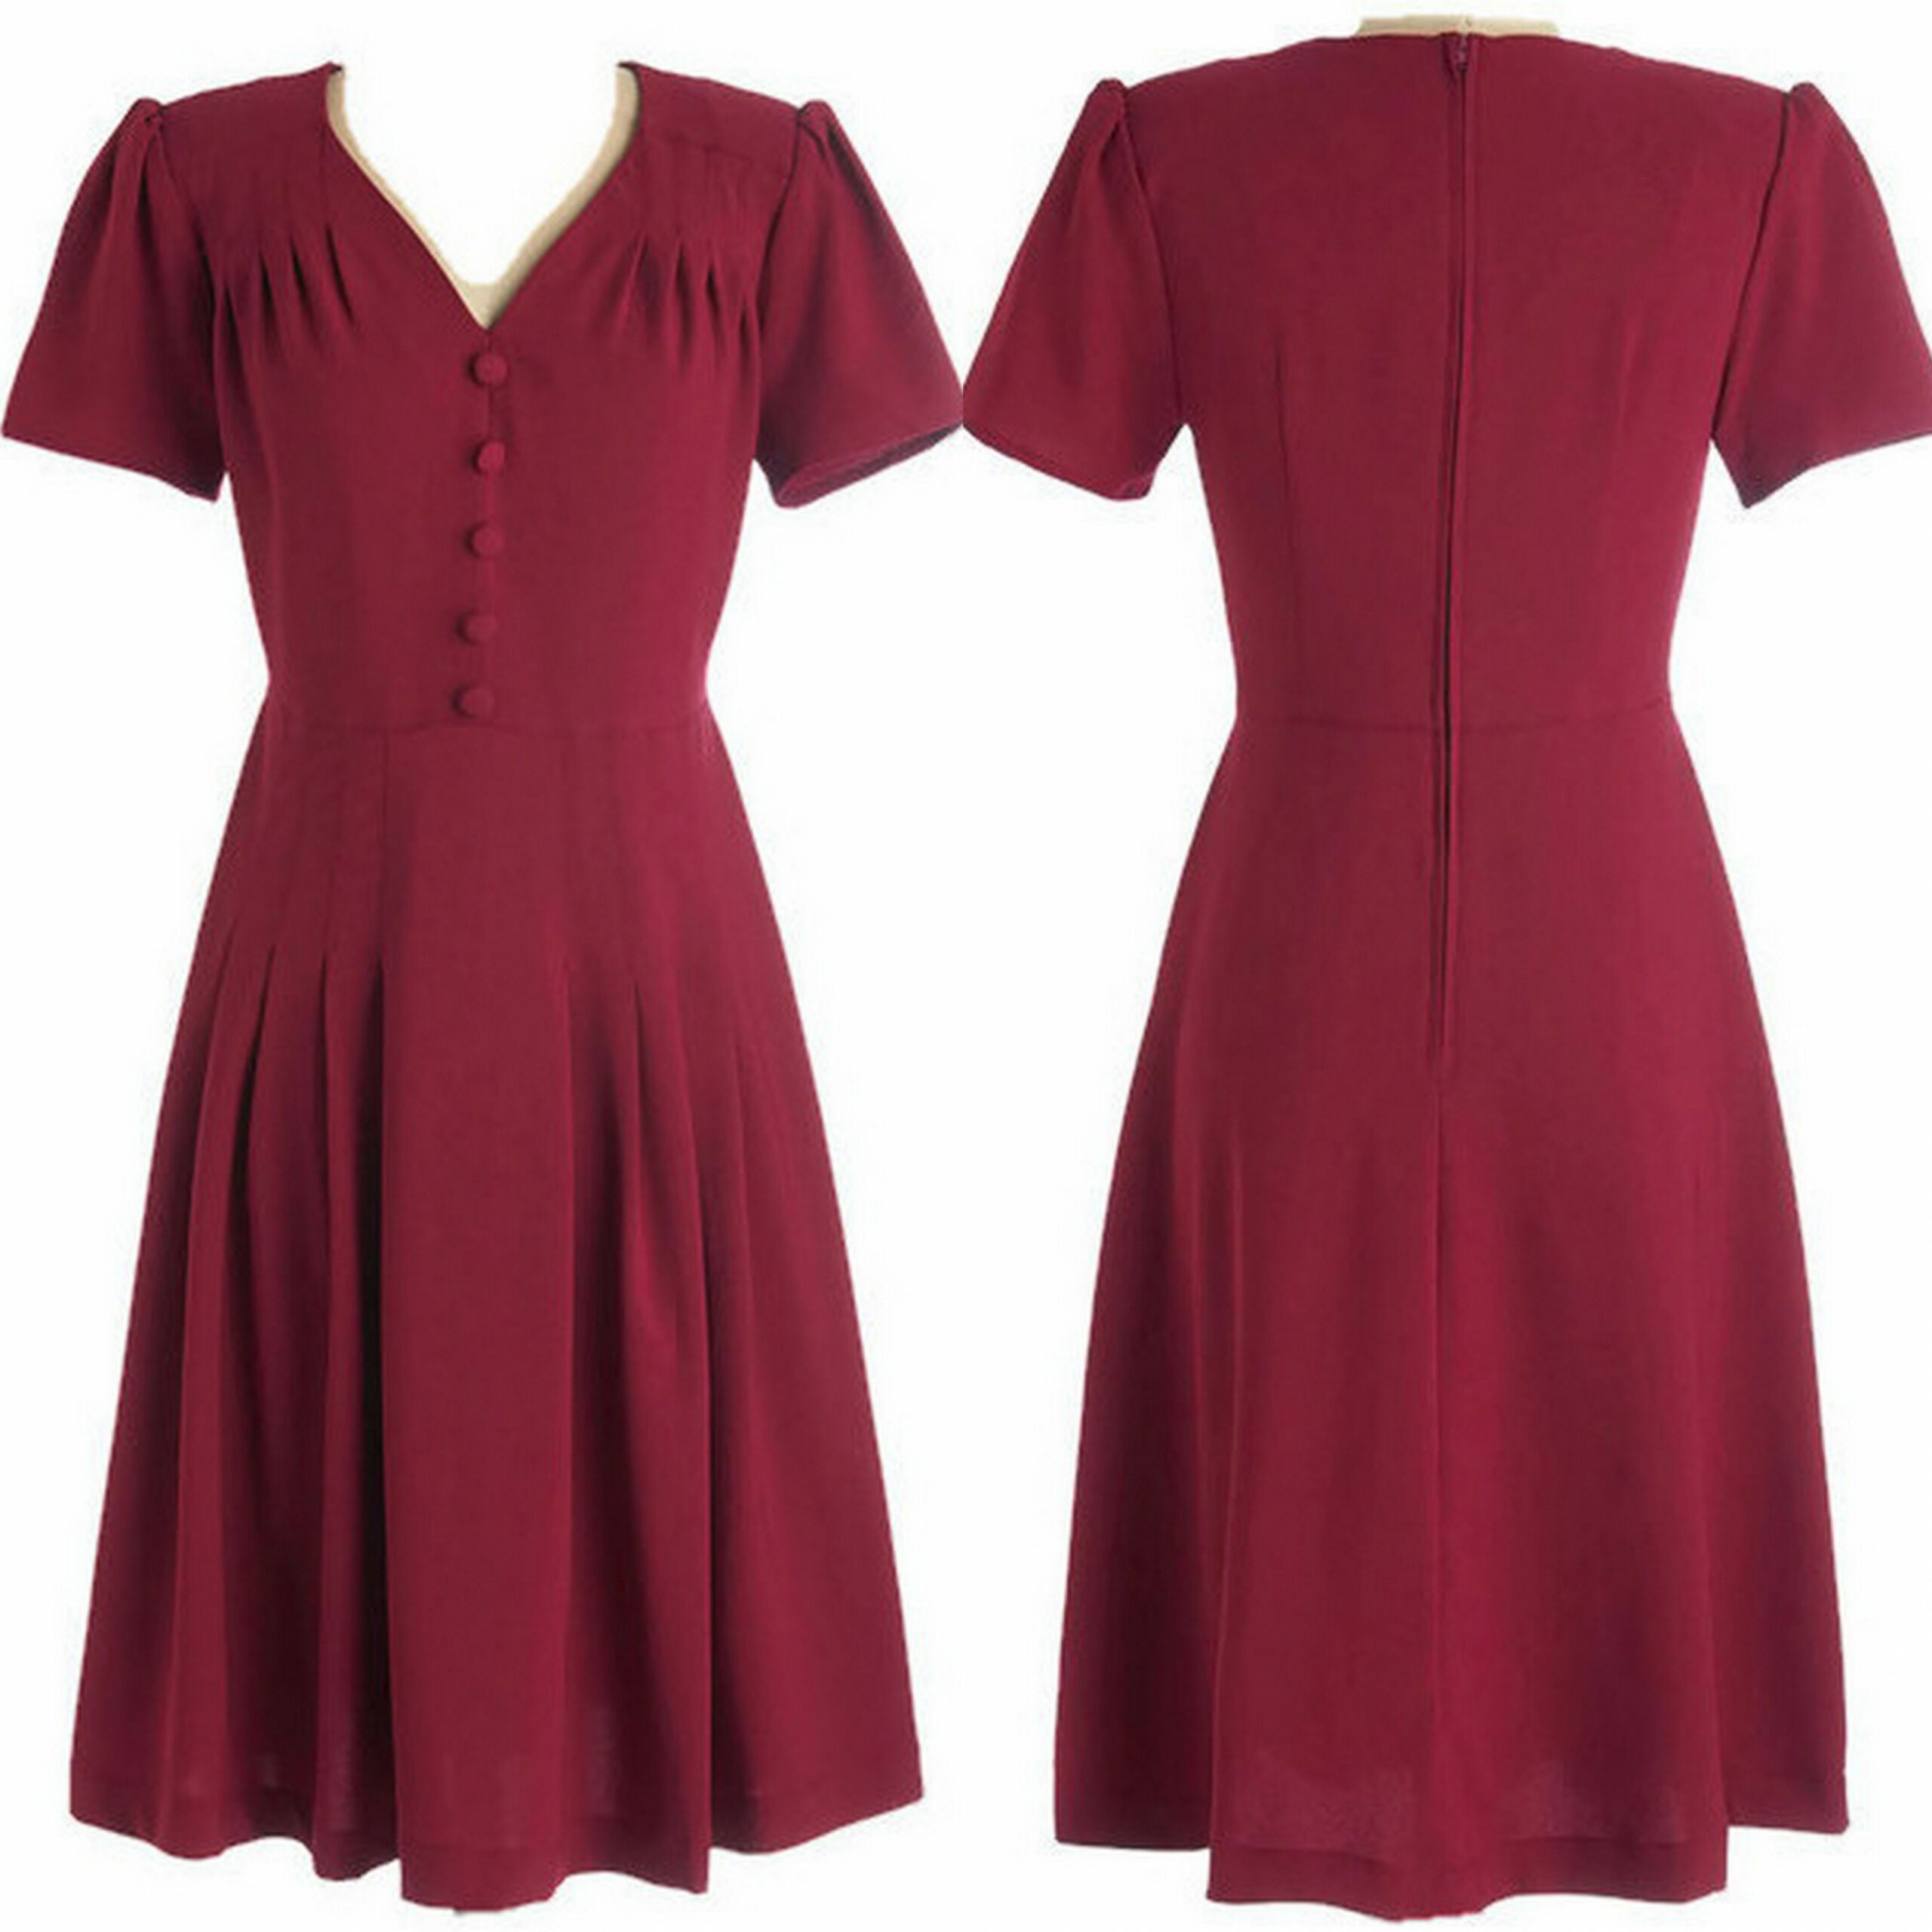 lindy hop dress 8s style dress contact us for linesheets lindy hop kleidung